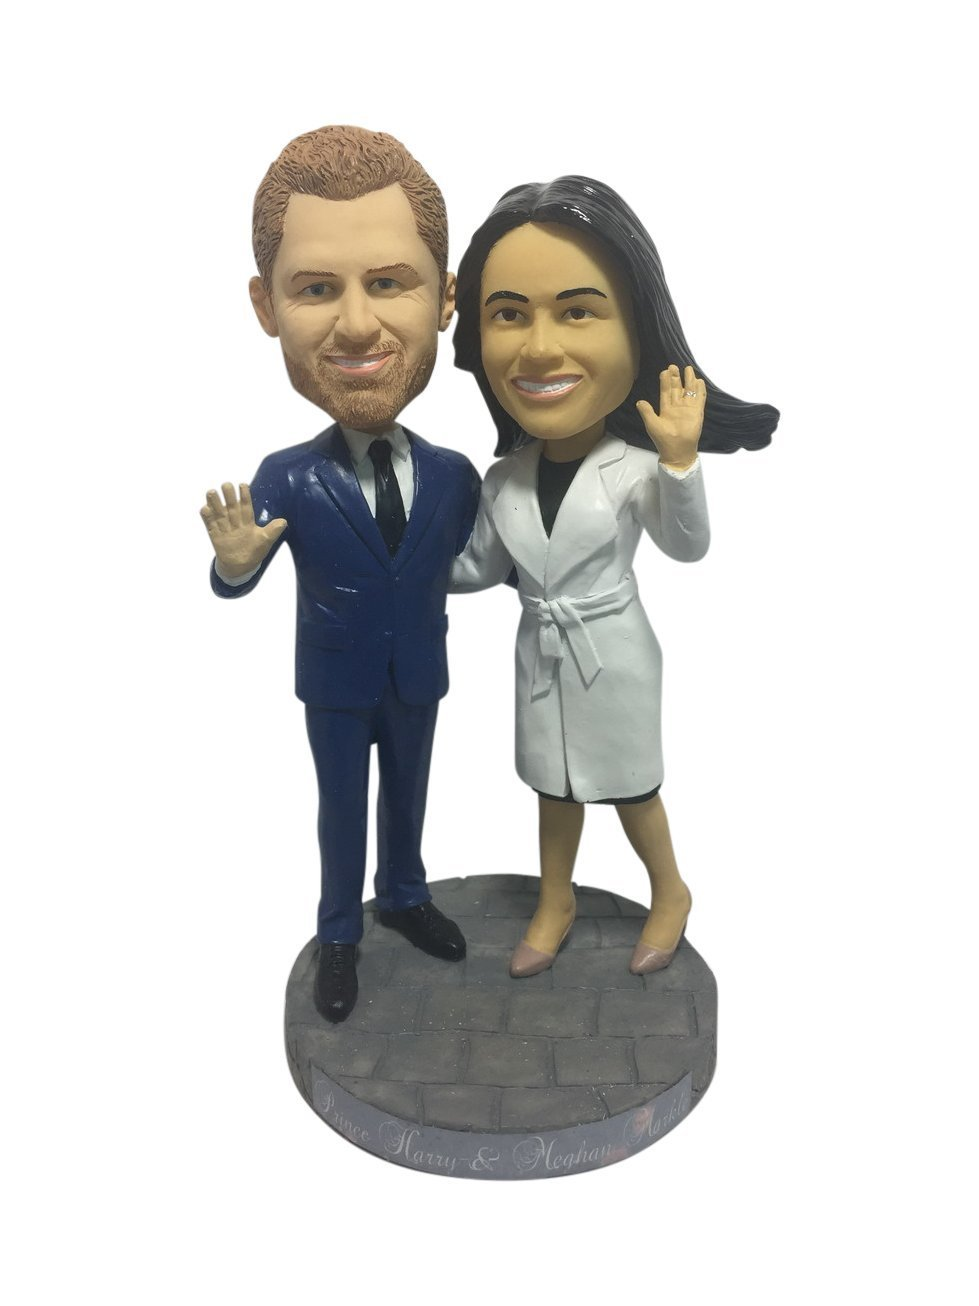 Royal Wedding Bobblehead - Prince Harry and Meghan Markle